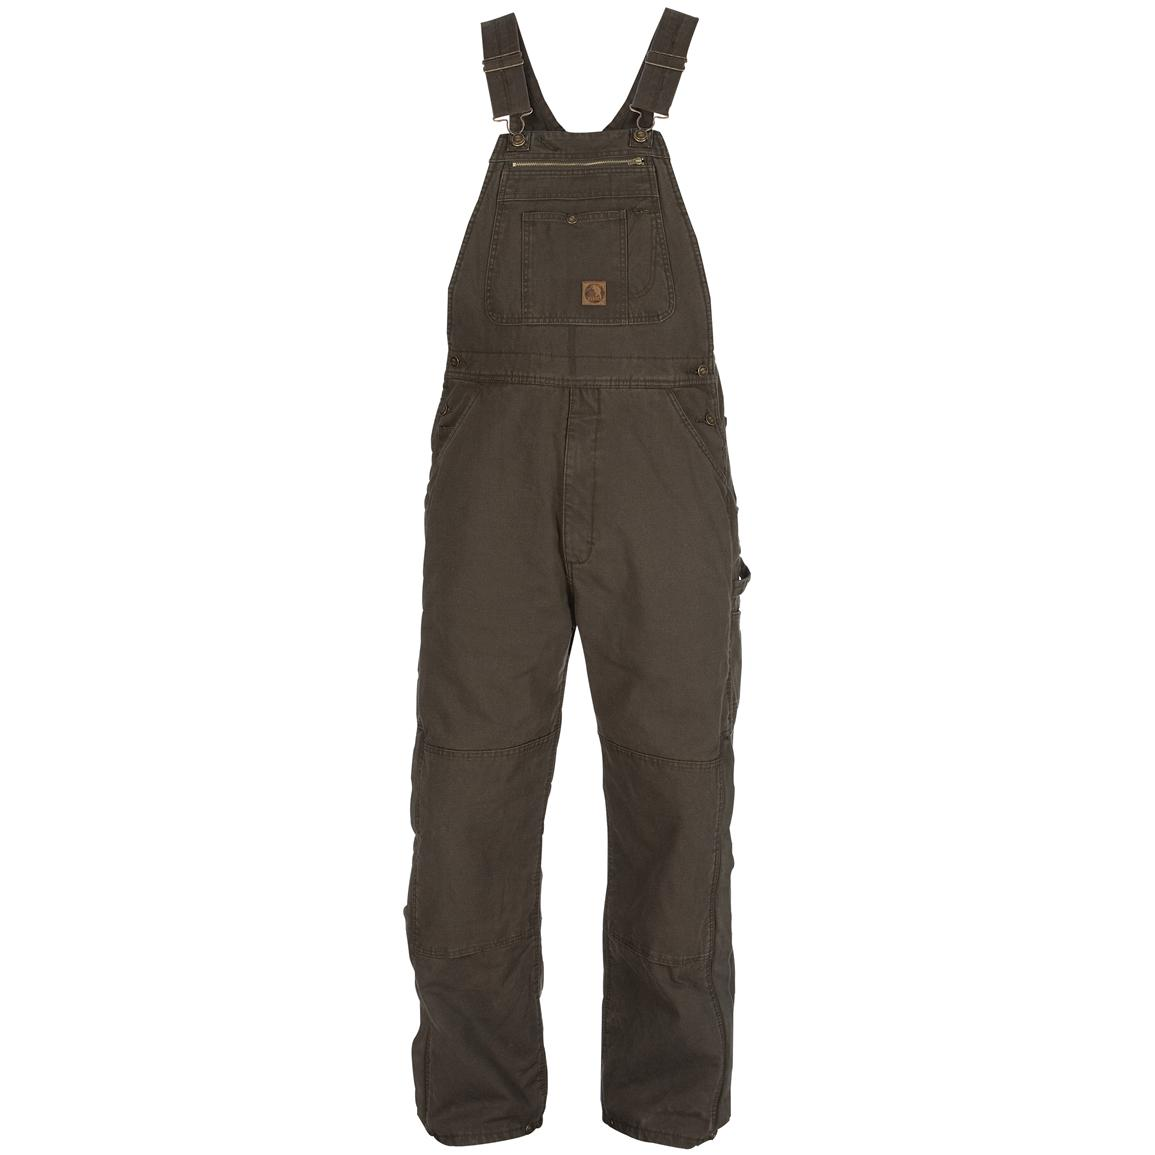 Men's Berne® Traditional Washed Insulated Bib Overalls, Olive Duck